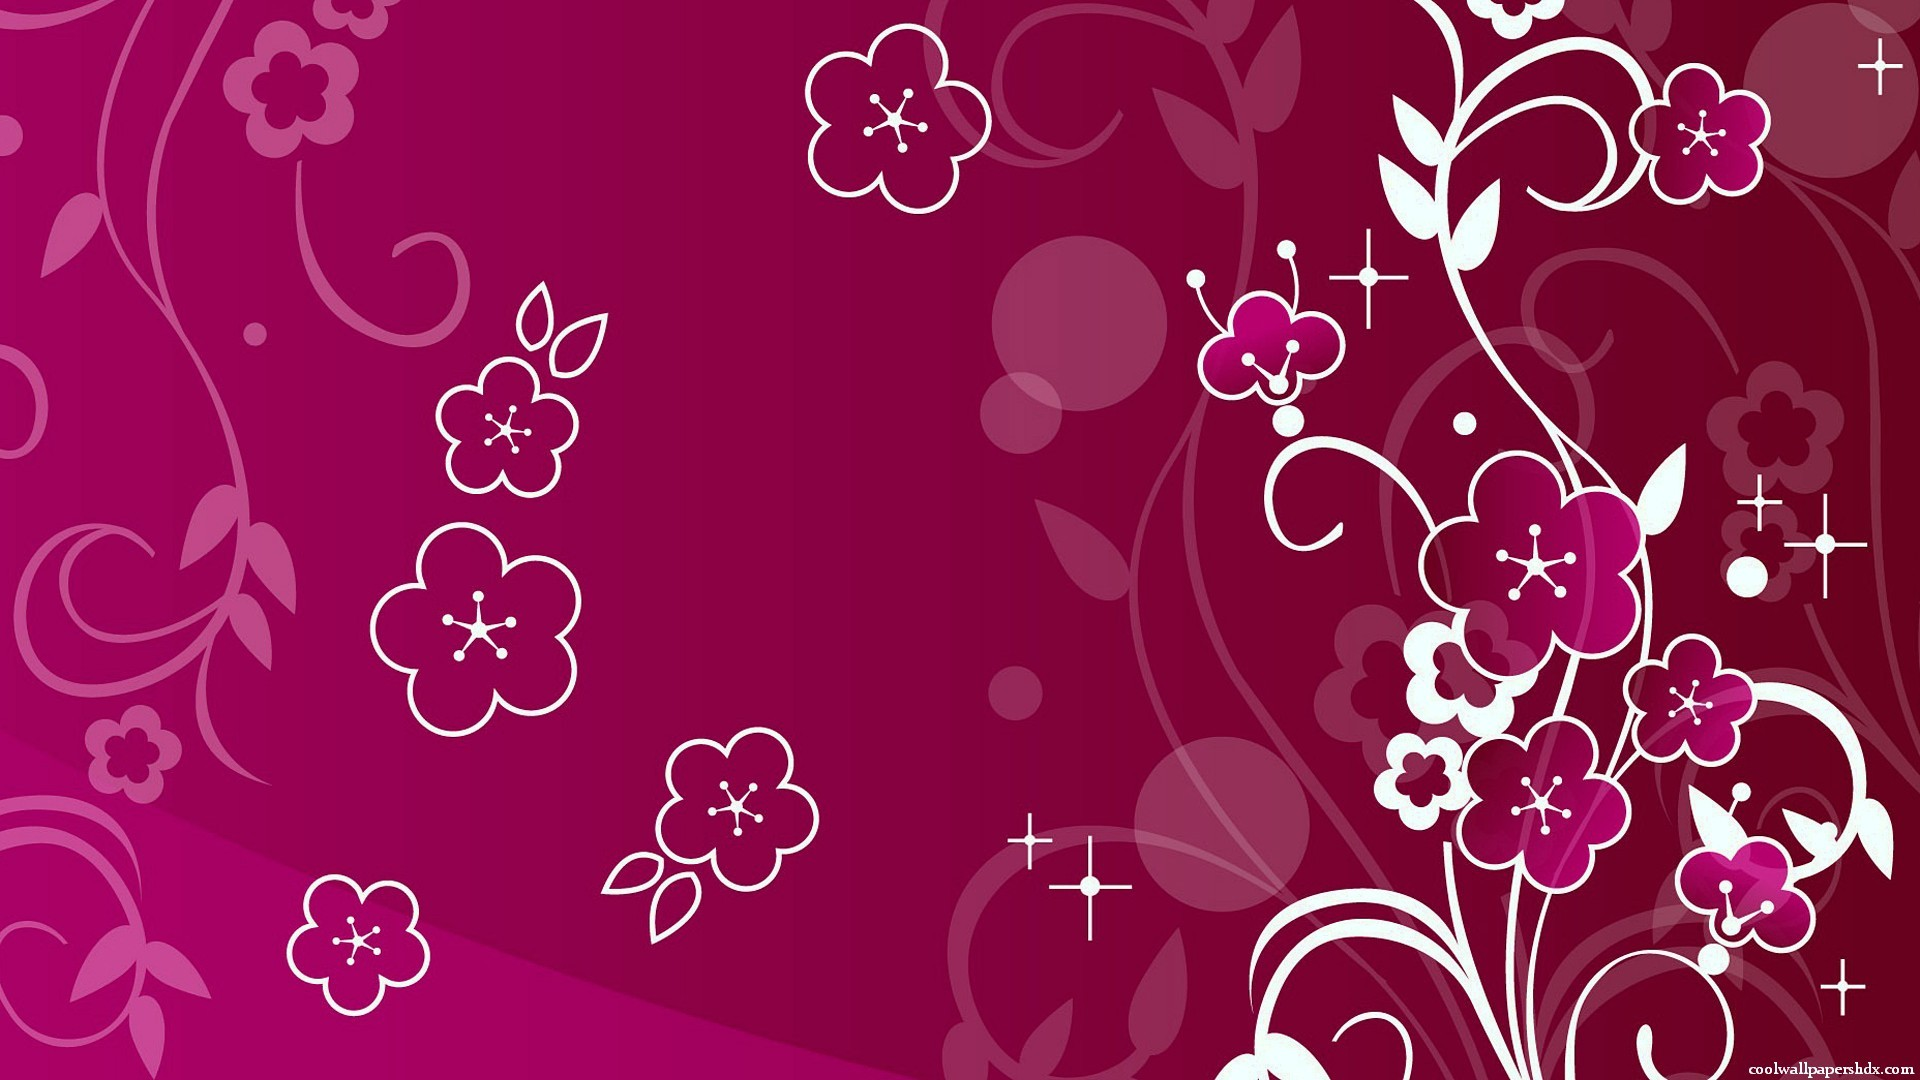 Colorful Girly Wallpapers 71 Images